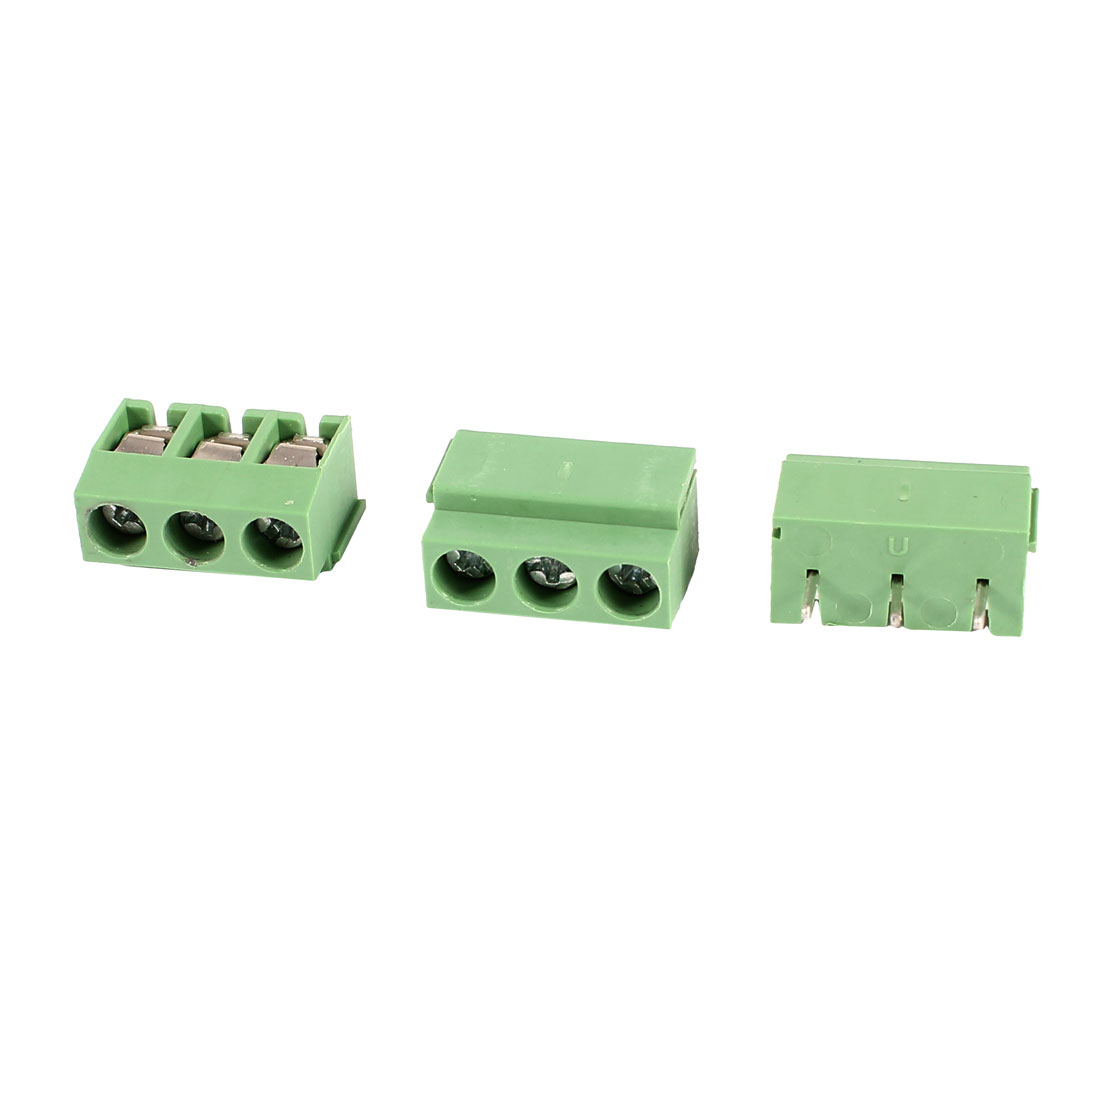 3 Pcs PCB Mount Screw Terminal Block 3 Pole 5mm Pin Pitch for 24-12AWG Wire 250V 5A